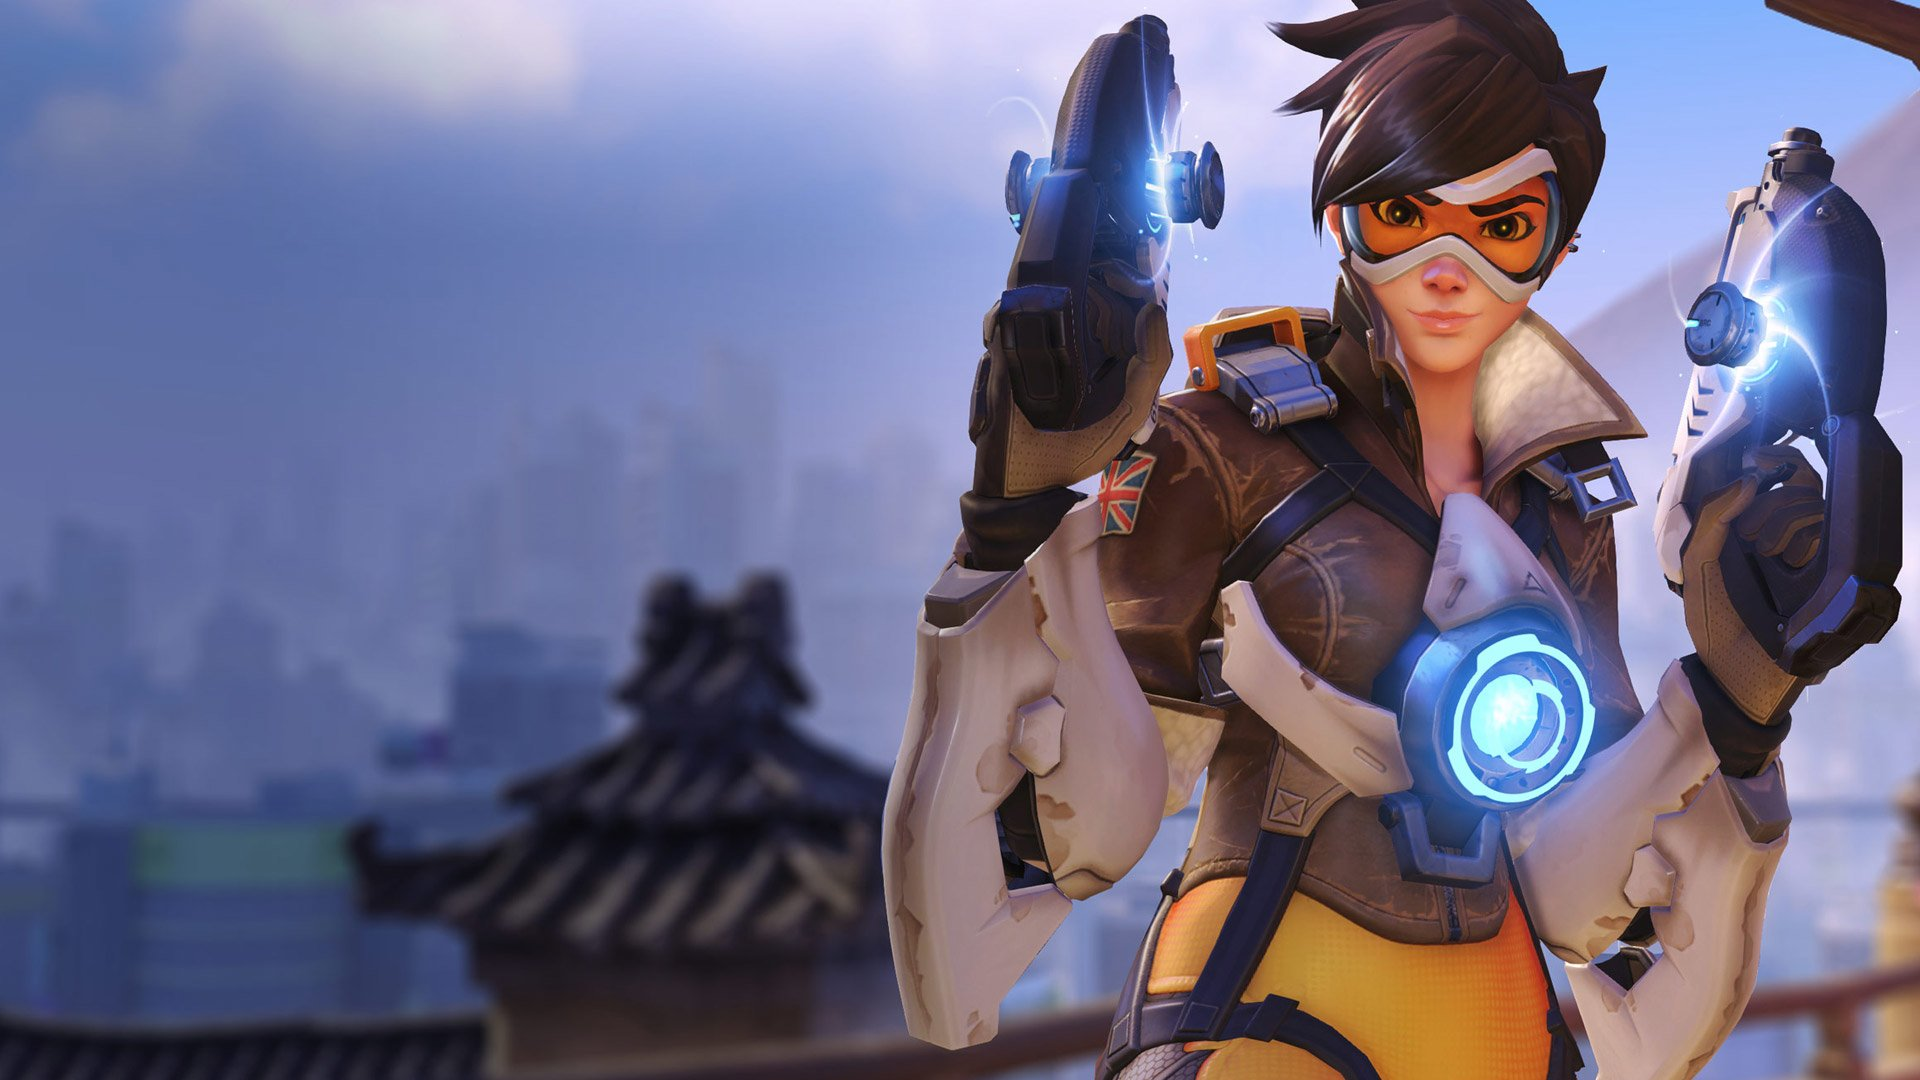 452 Tracer Overwatch Hd Wallpapers Background Images